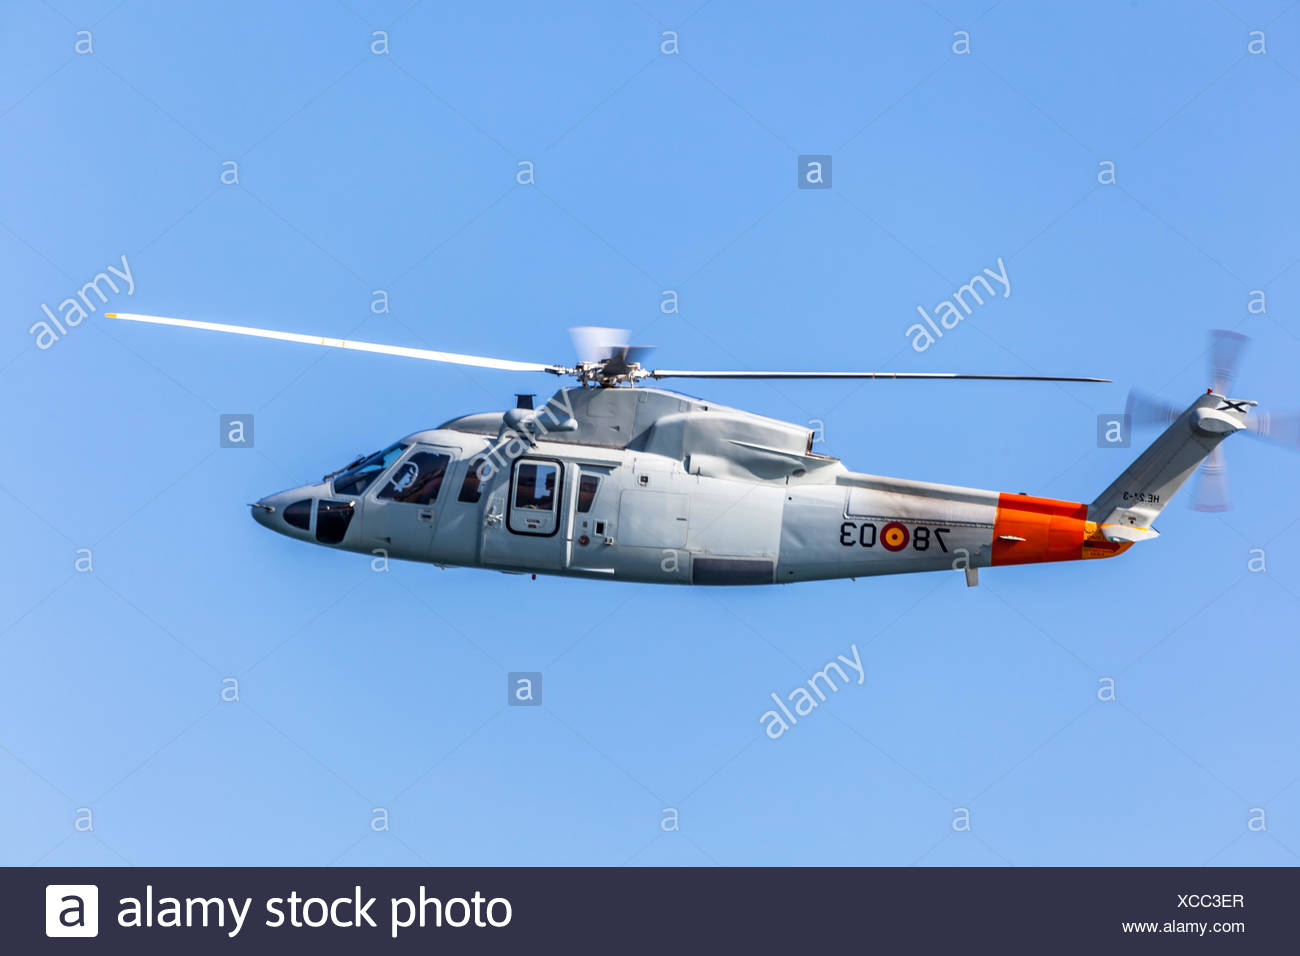 Helicopter Sikorsky S-76C Stock Photo